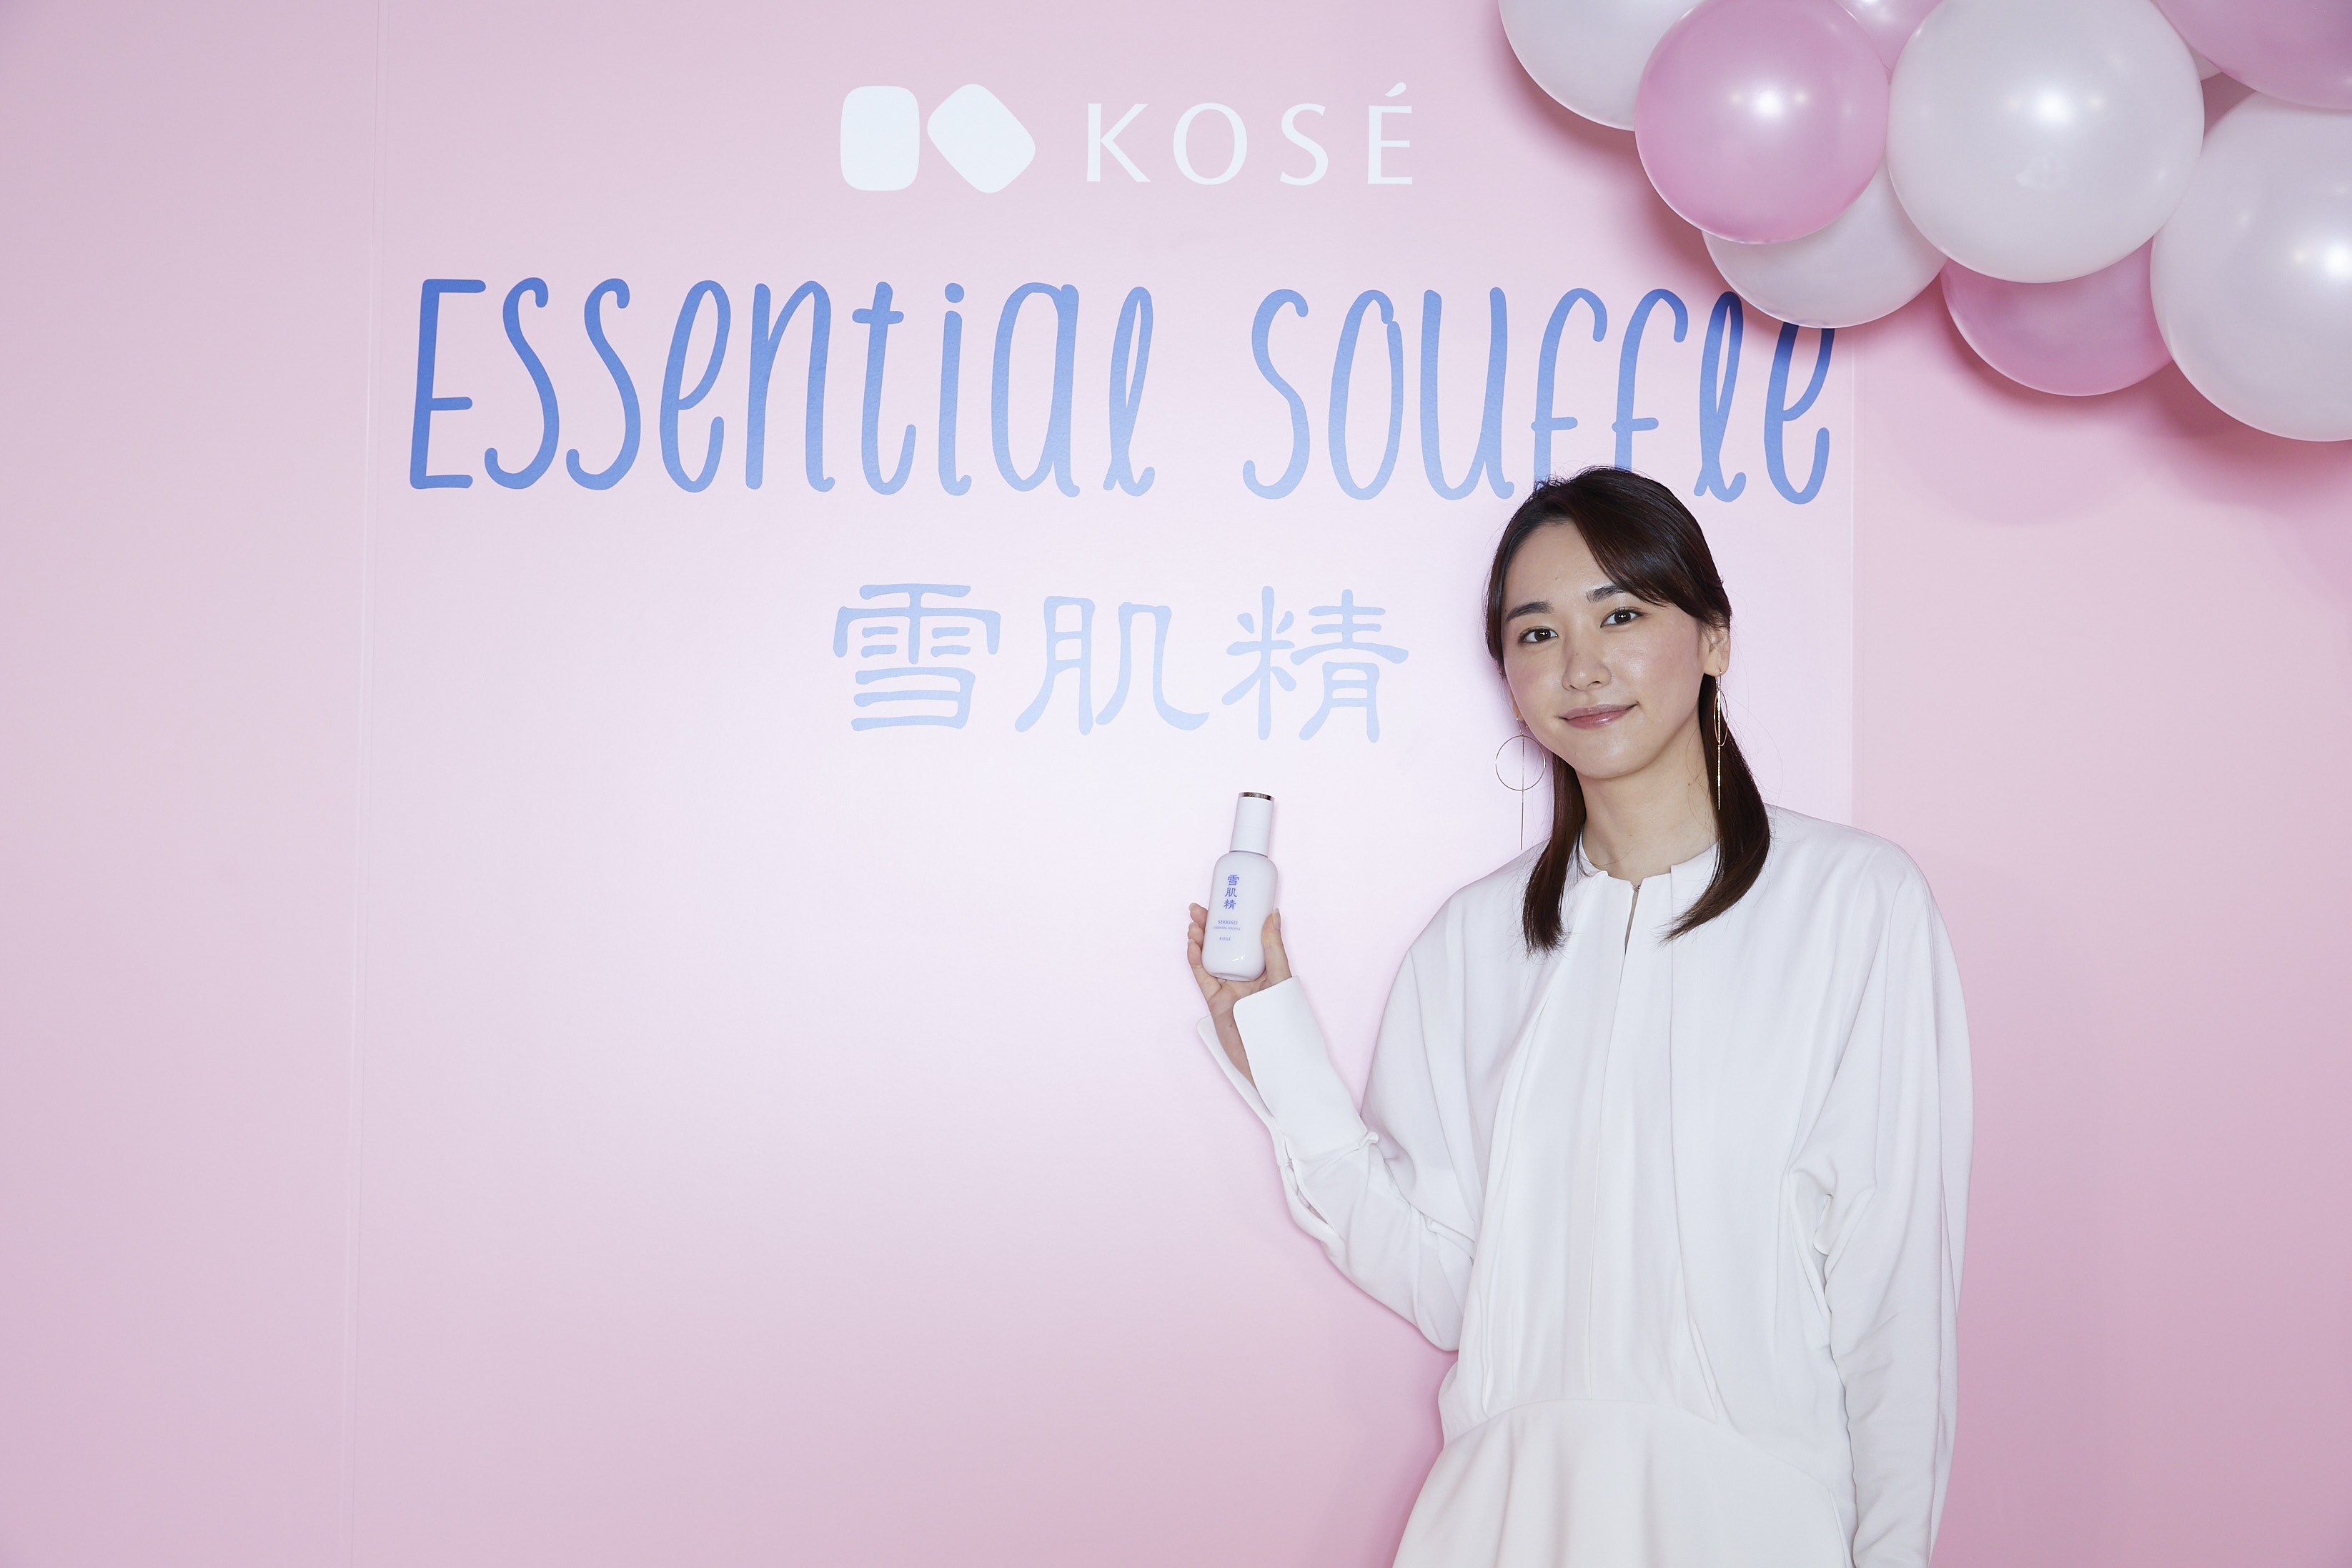 新垣結衣「Essential Souffle Magical Land」